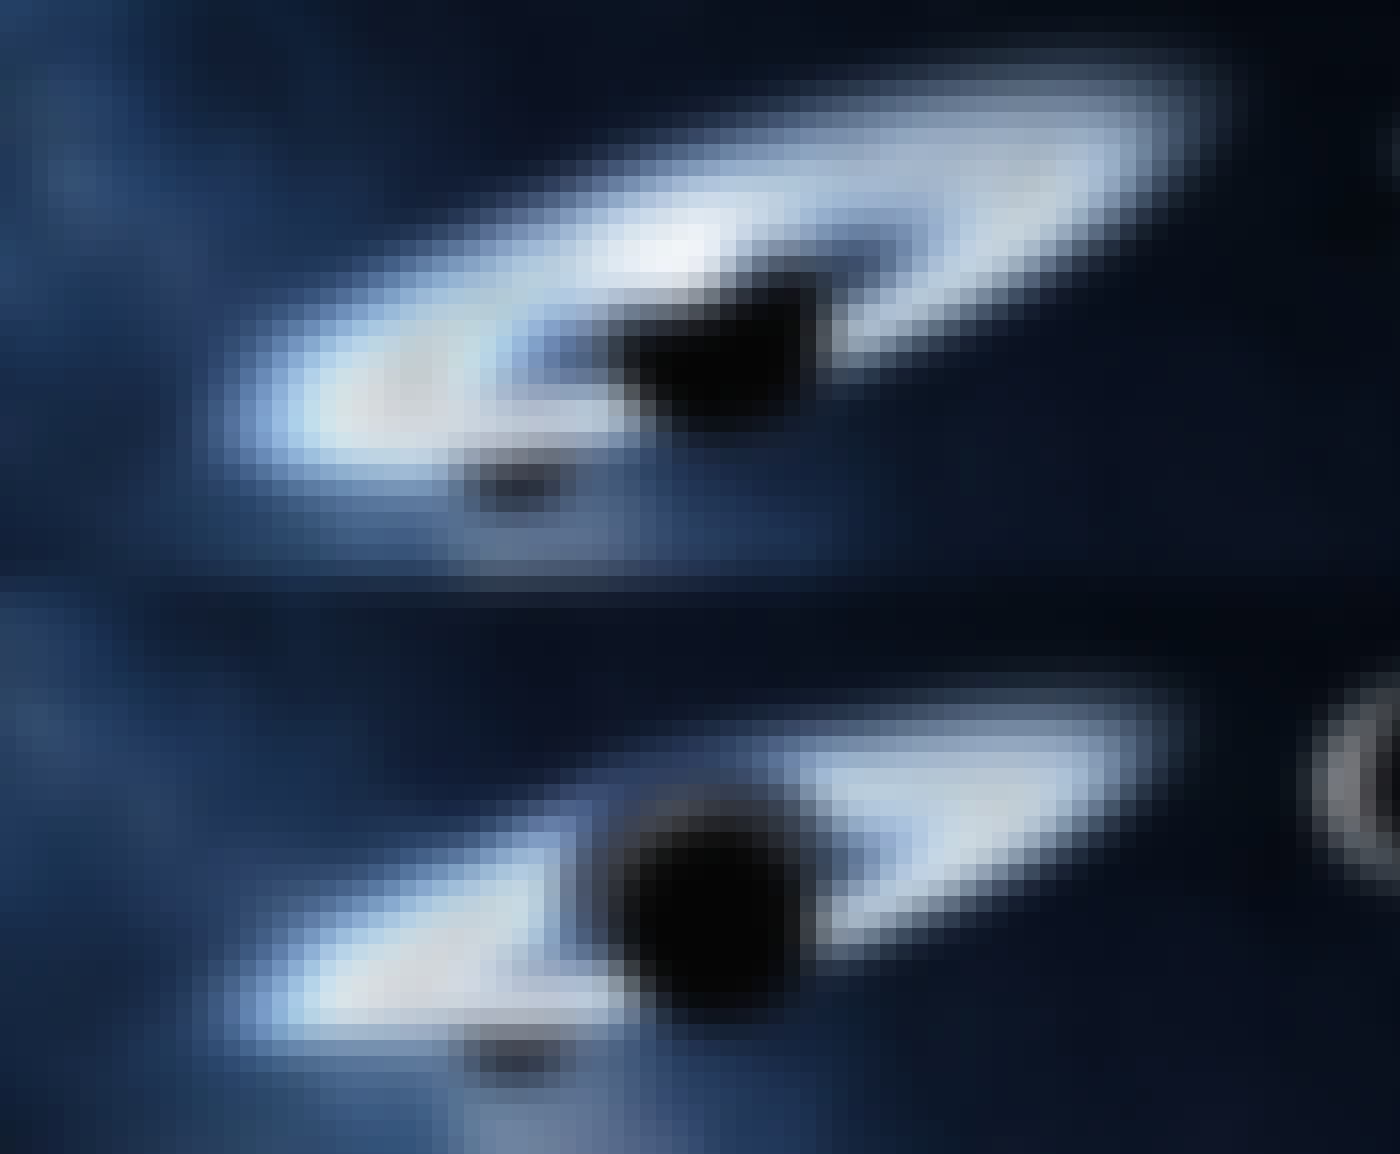 2 pictures of different position of asteroids around a planet.